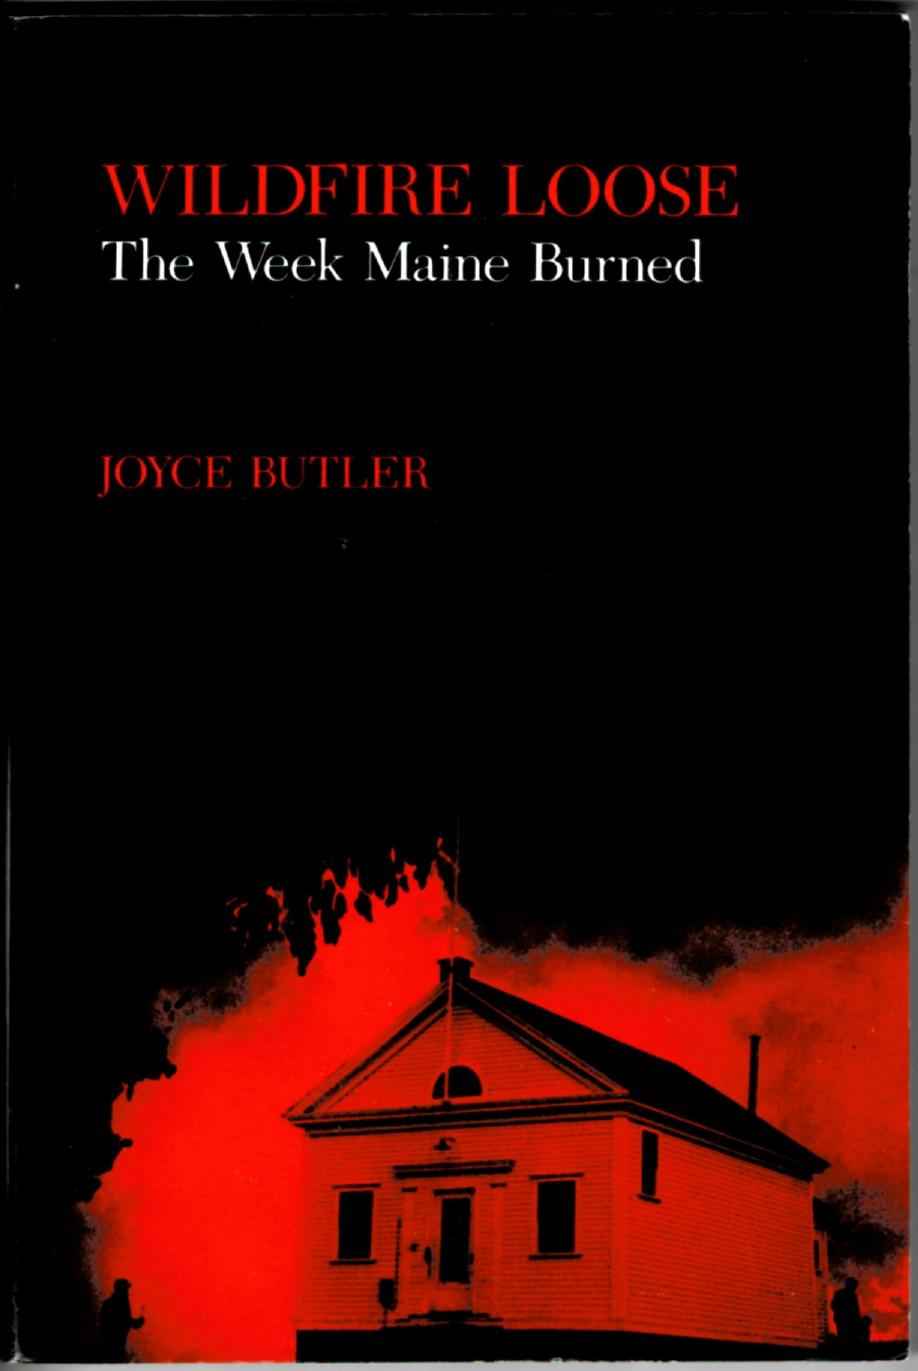 Image for Wildfire Loose, The Week Maine Burned